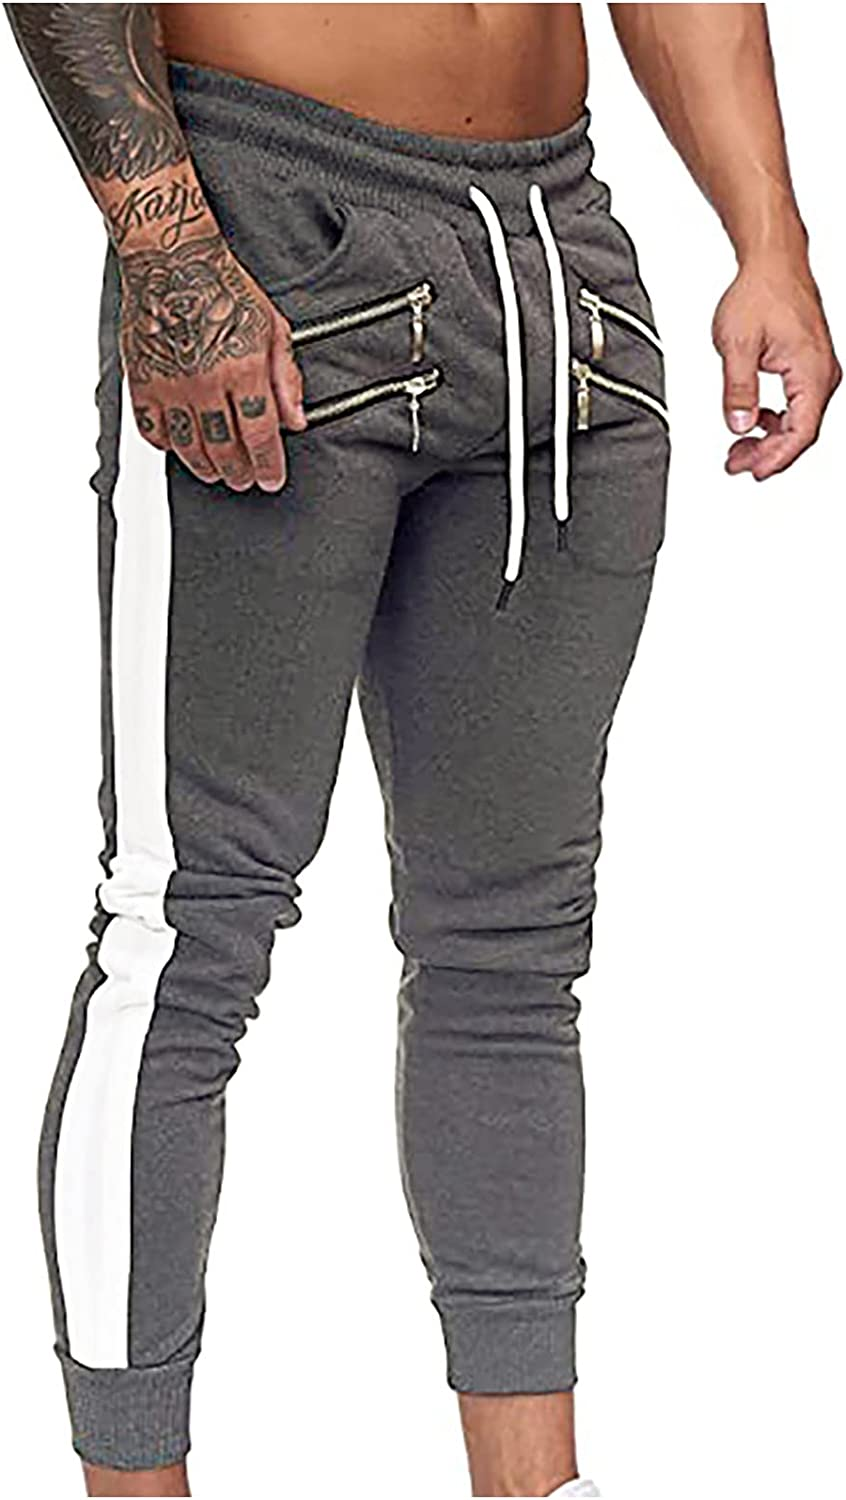 Men's Gym Jogger Max 68% OFF Pants Workout Max 56% OFF Athletic Joggers Running Training